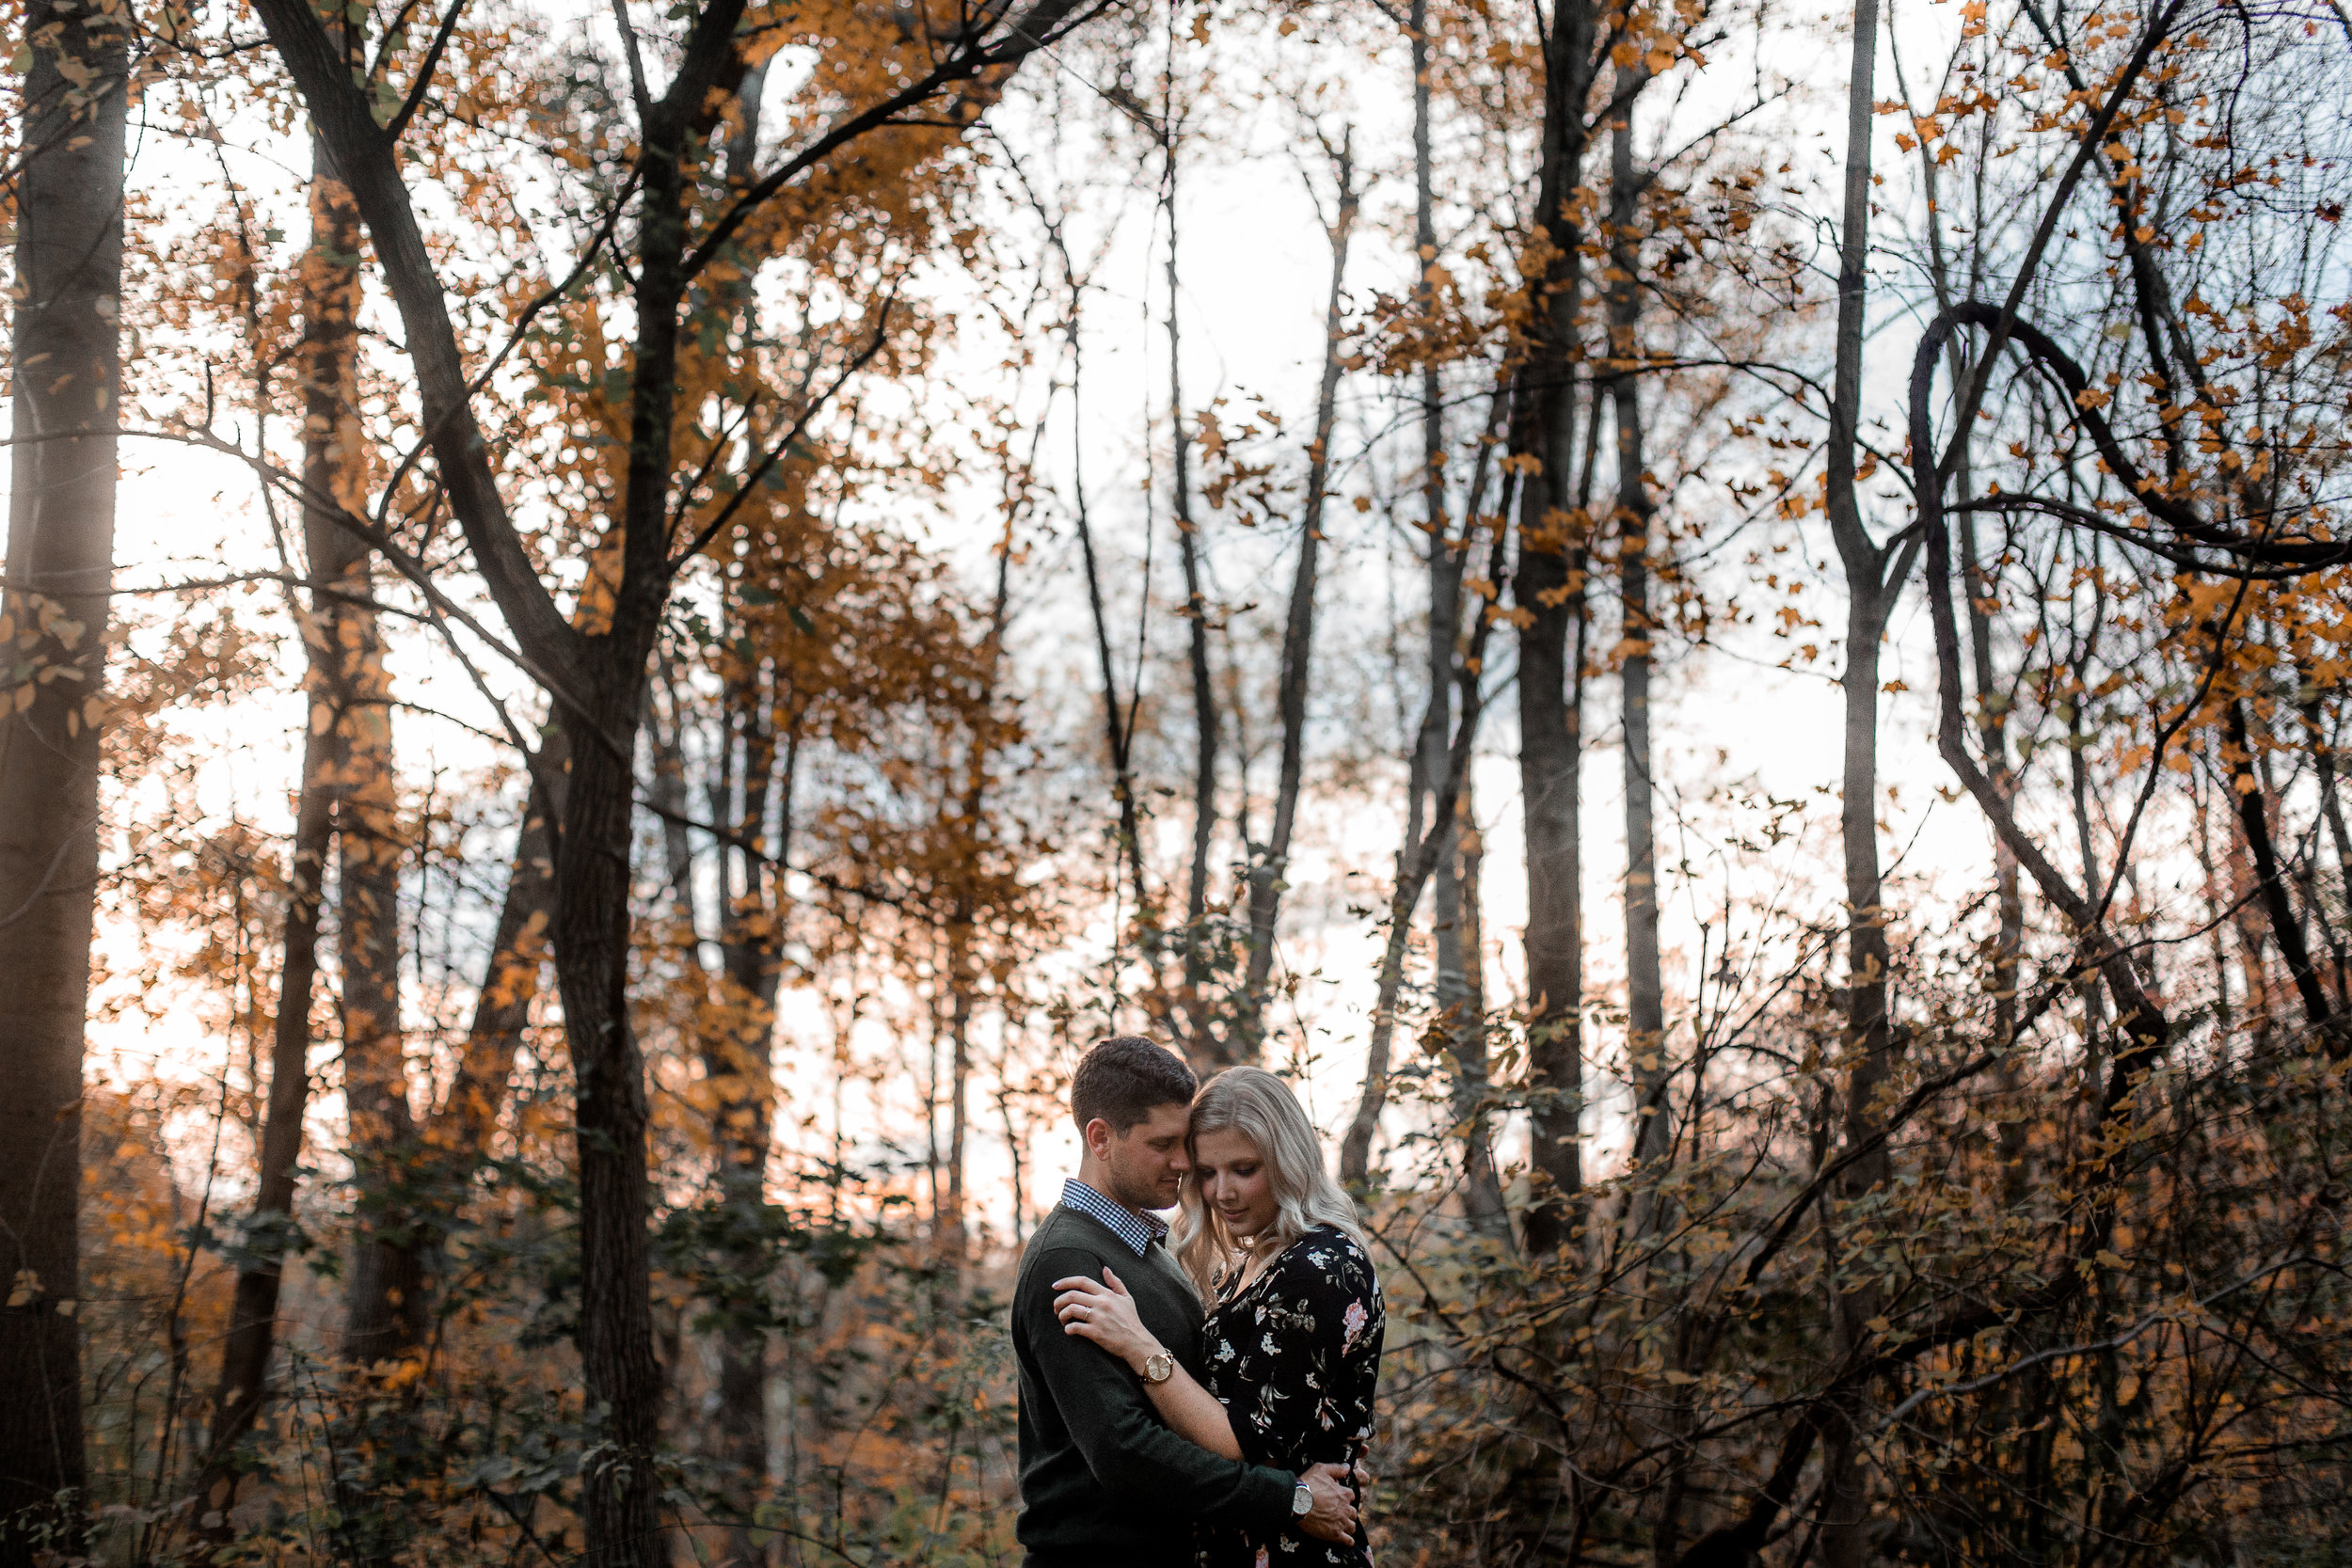 nicole-daacke-photography-carefree-bohemian-lancaster-pa-pennsylvania-engagement-photos-engagement-session-golden-sunset-adventure-session-in-lancaster-pa-lancaster-pa-outdoor-wedding-photographer-58.jpg